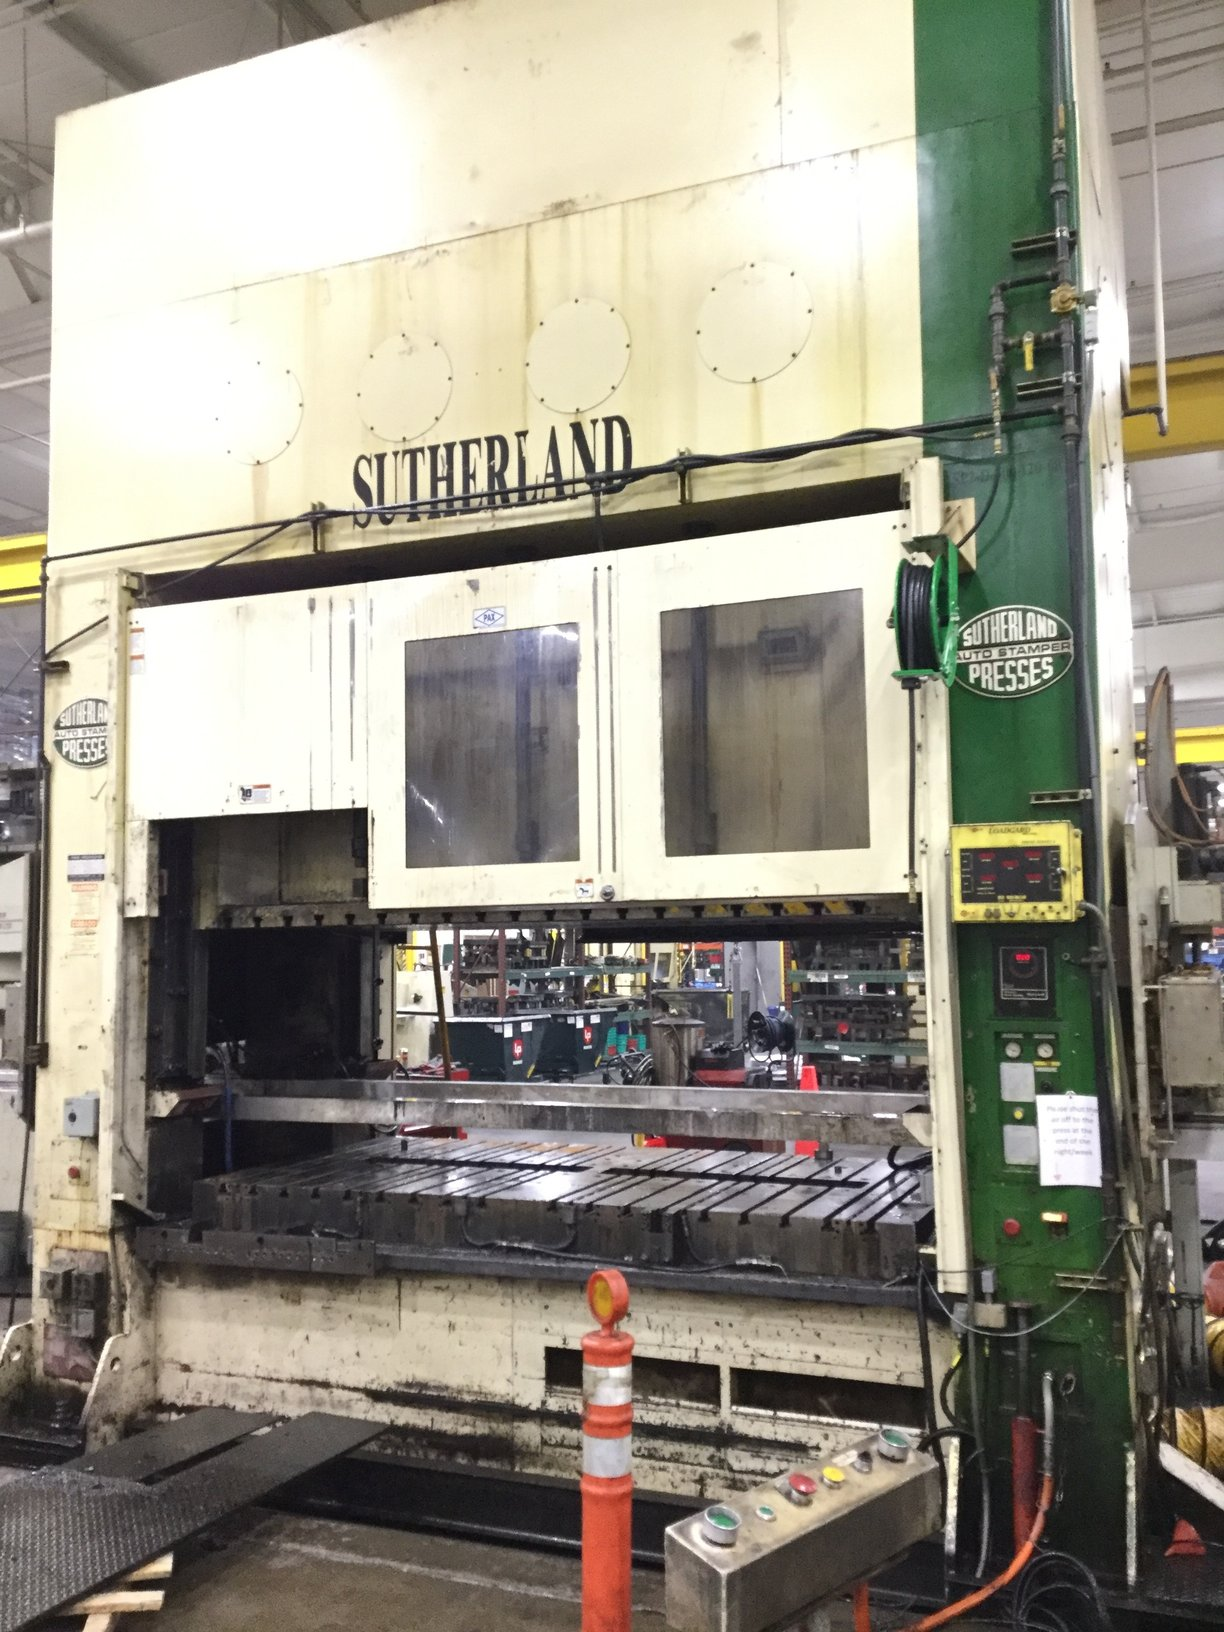 330 TON SUTHERLAND STRAIGHT SIDE DOUBLE CRANK PRESS